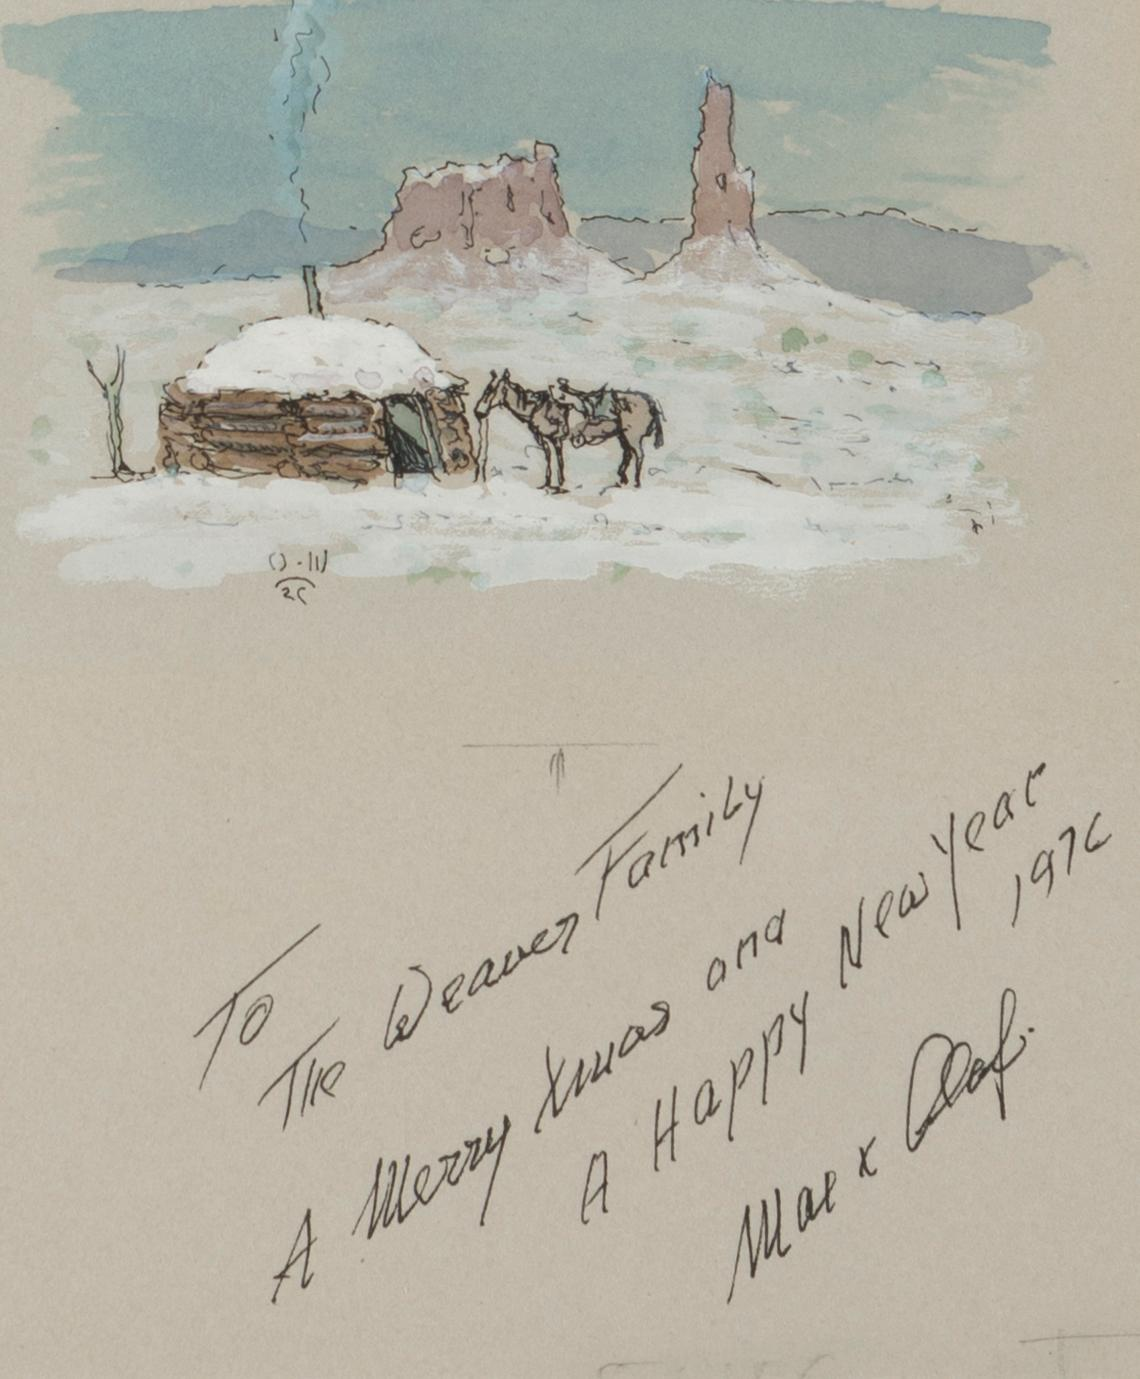 "Olaf Wieghorst, (1899-1988 El Cajon, CA), Hogan and horse in the snow, 1976, Gouache and watercolor on paper under glass, Sight: 6.5"" H"